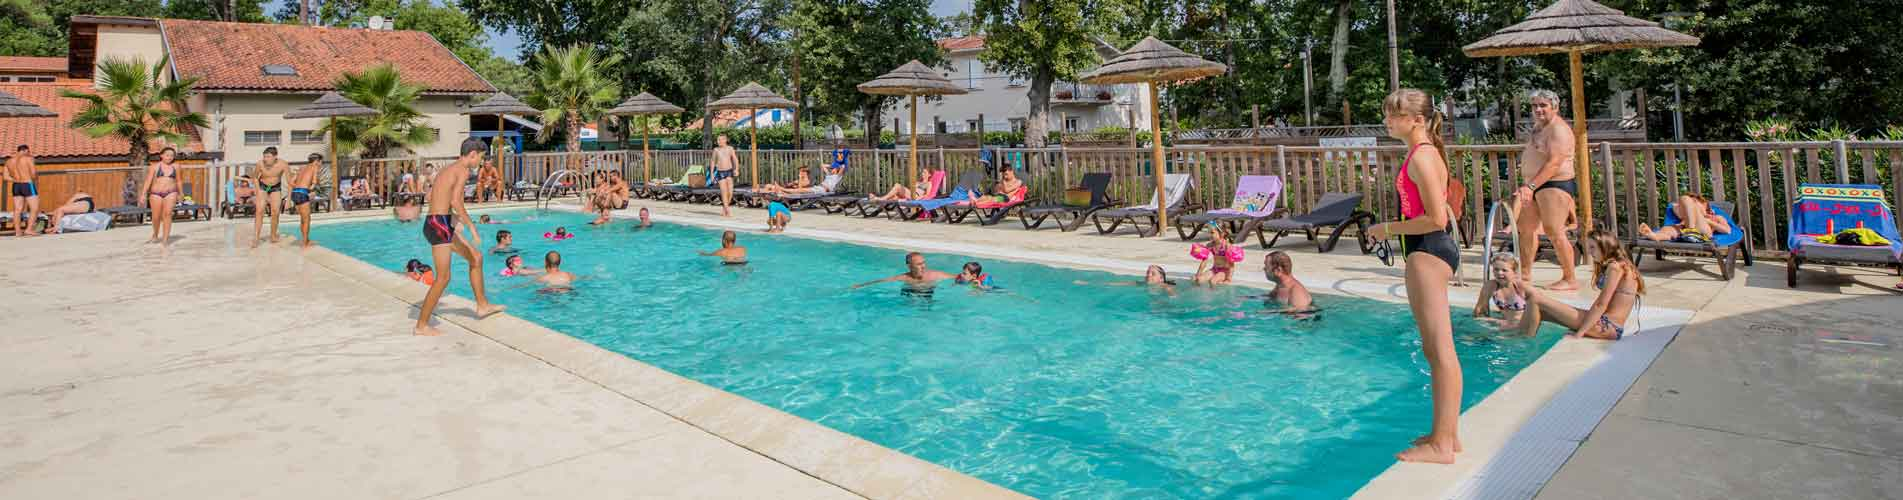 hiring heated swimming pool ondres